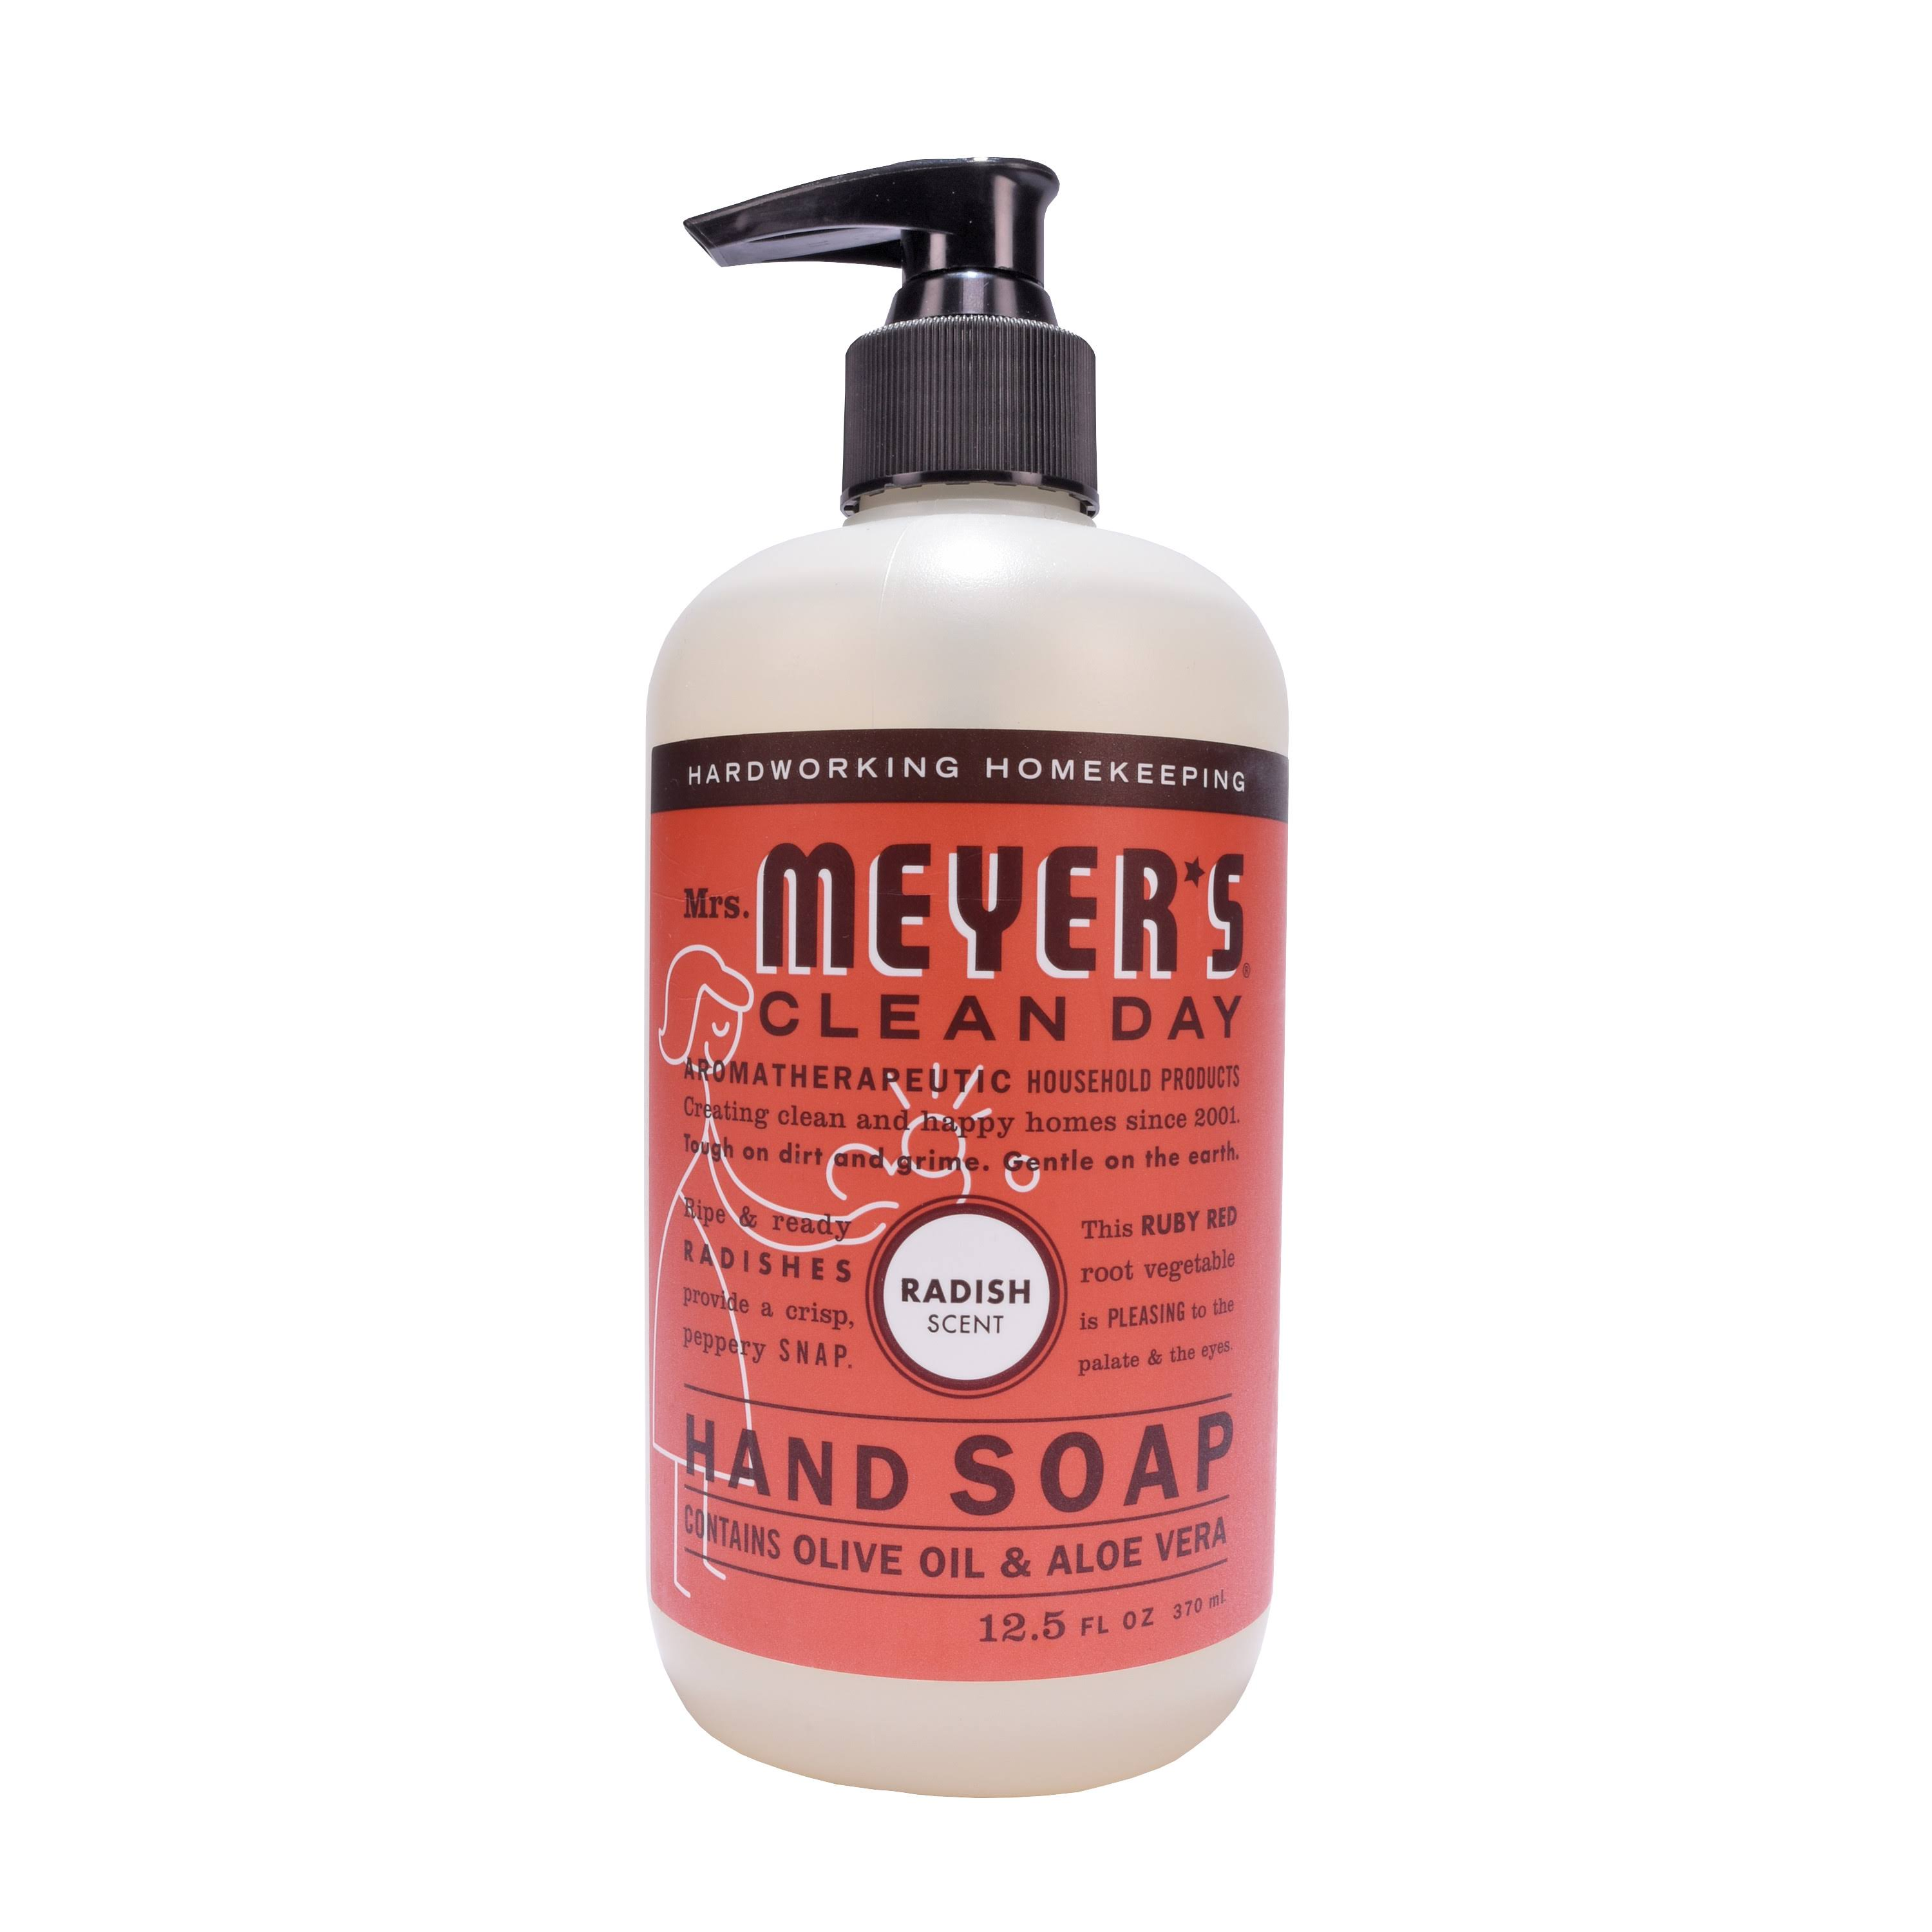 Mrs. Meyers Clean Day Liquid Hand Soap - Radish Scent, 12.5oz